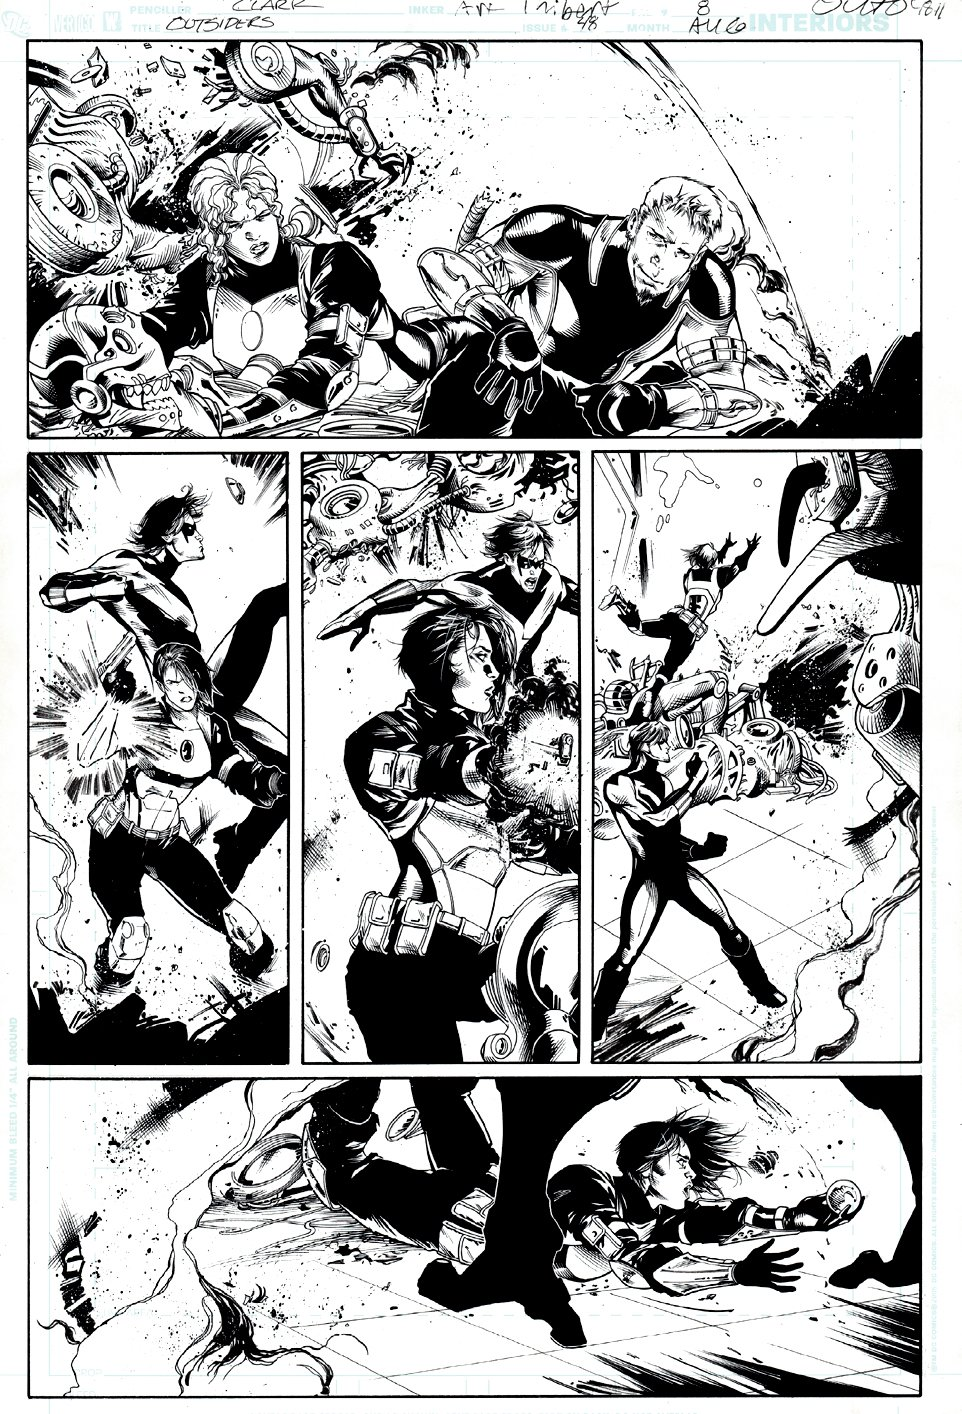 Outsiders #48 p 8 (TEAM ACTION PAGE!) 2007